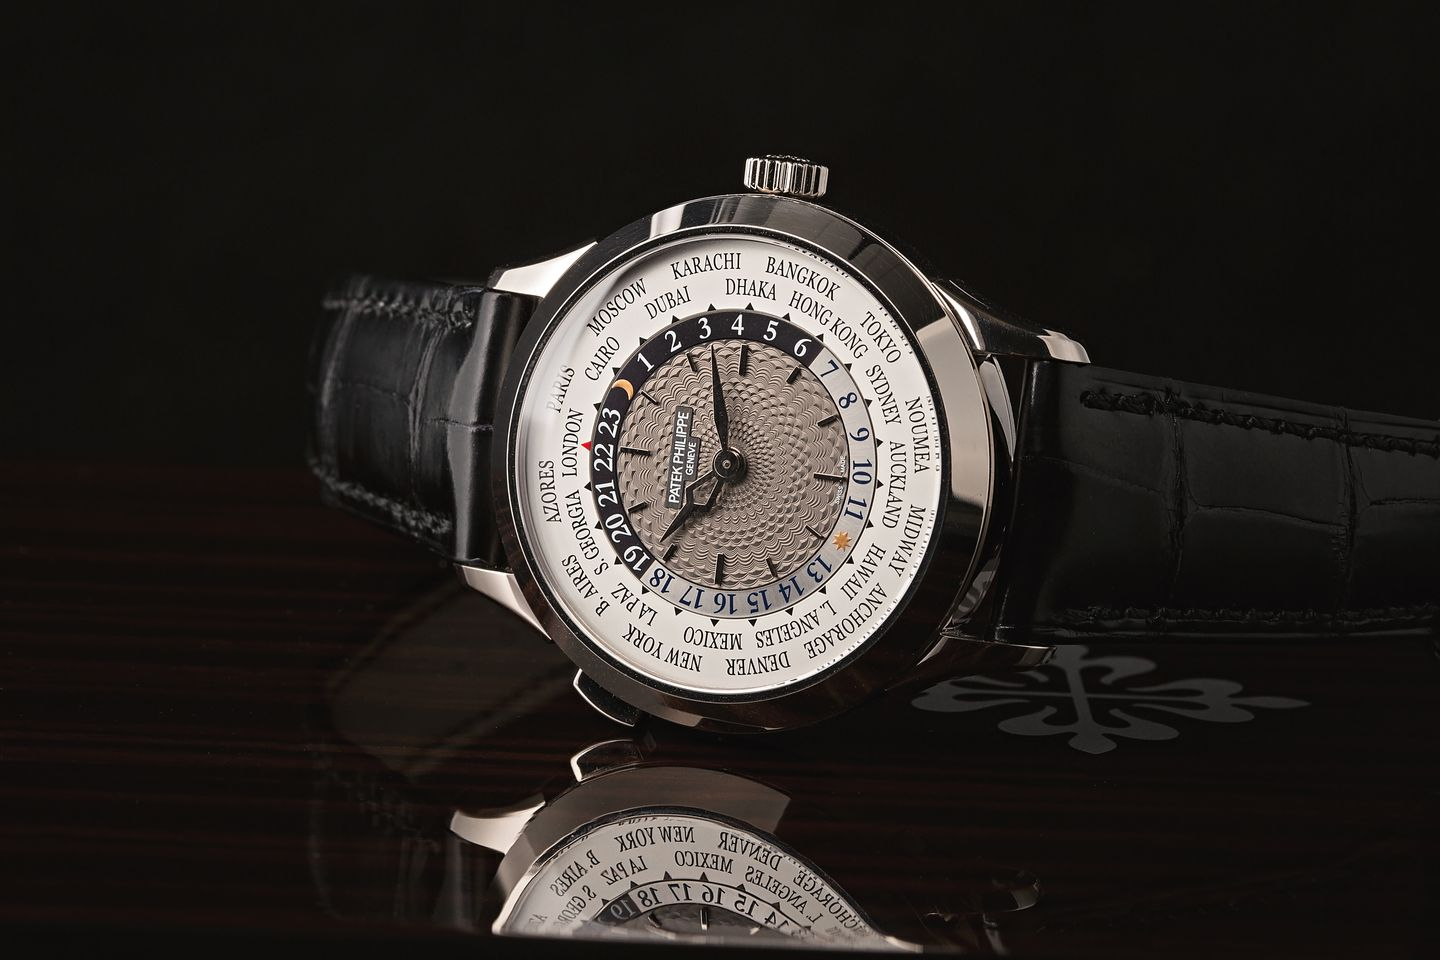 Patek Philippe Better Rolex Compare World Time